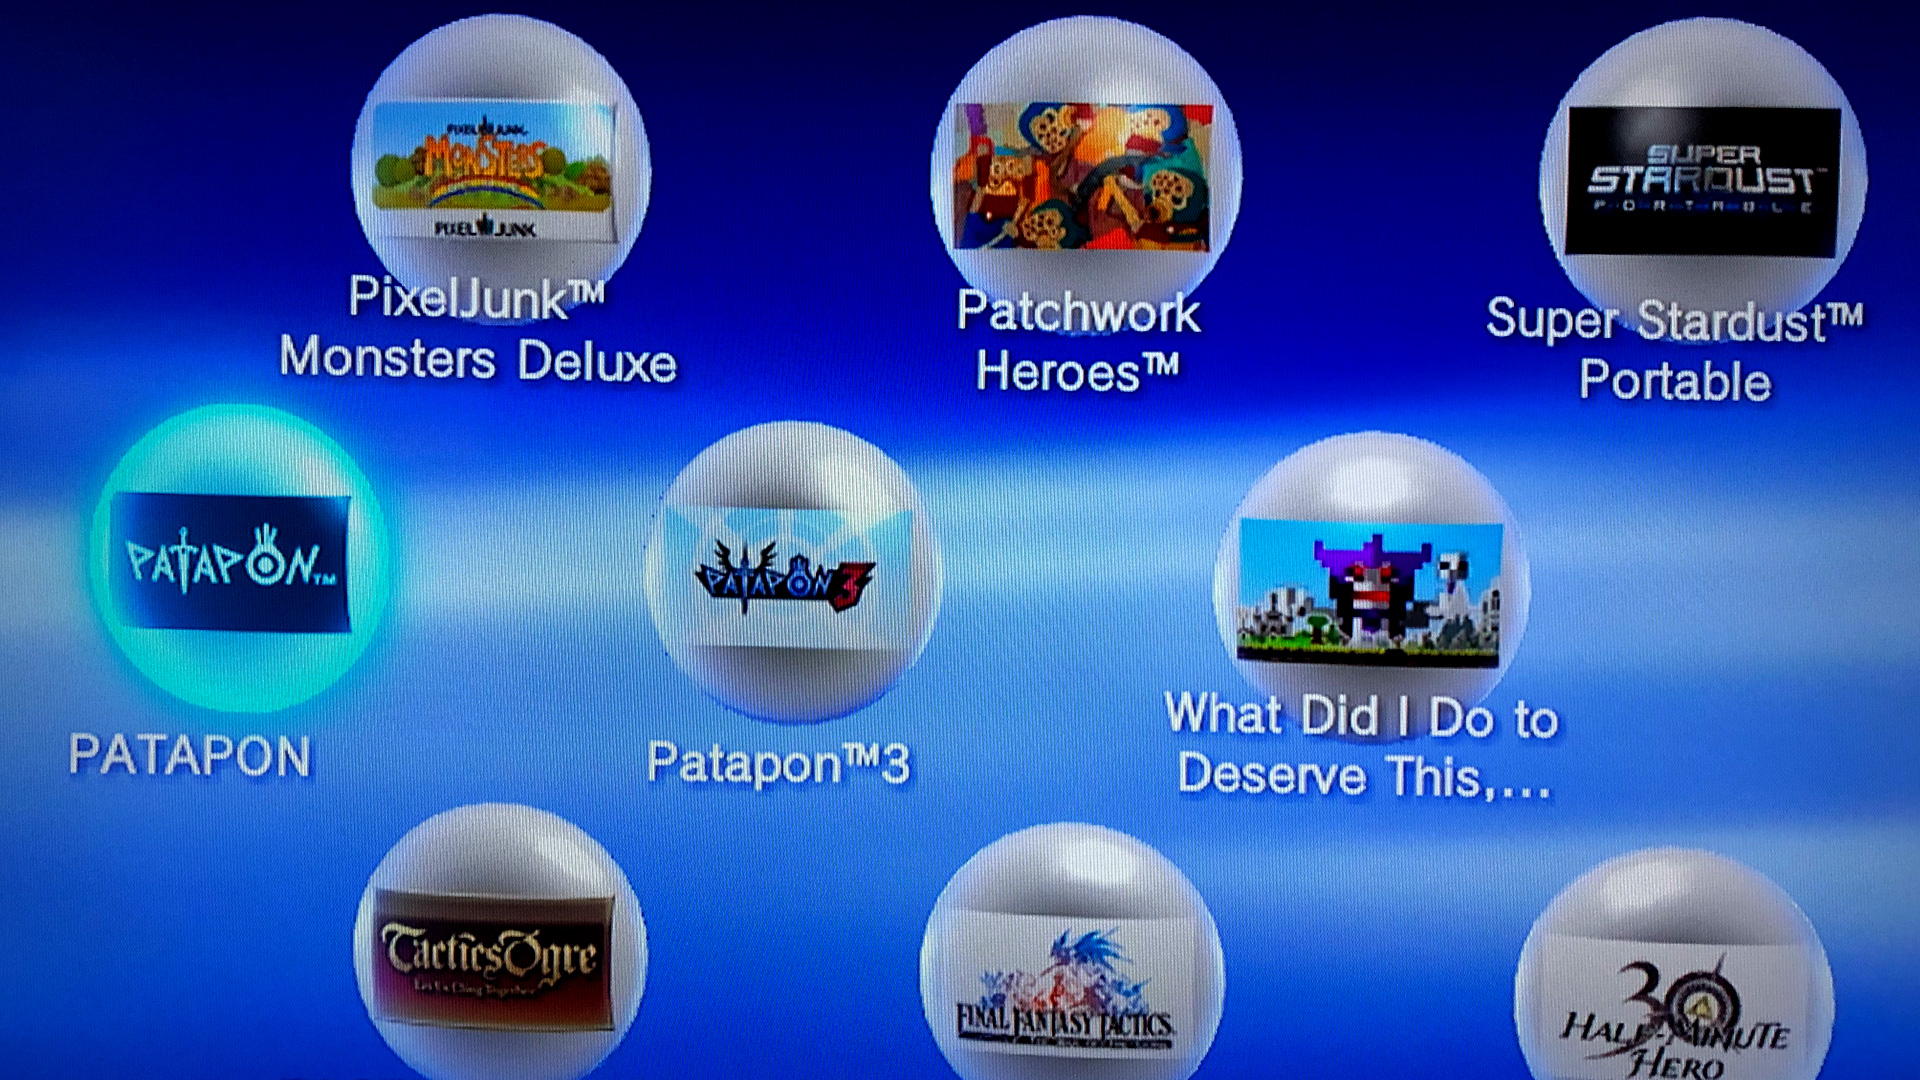 Patchwork Heroes is a hidden gem of the digital PSP library.